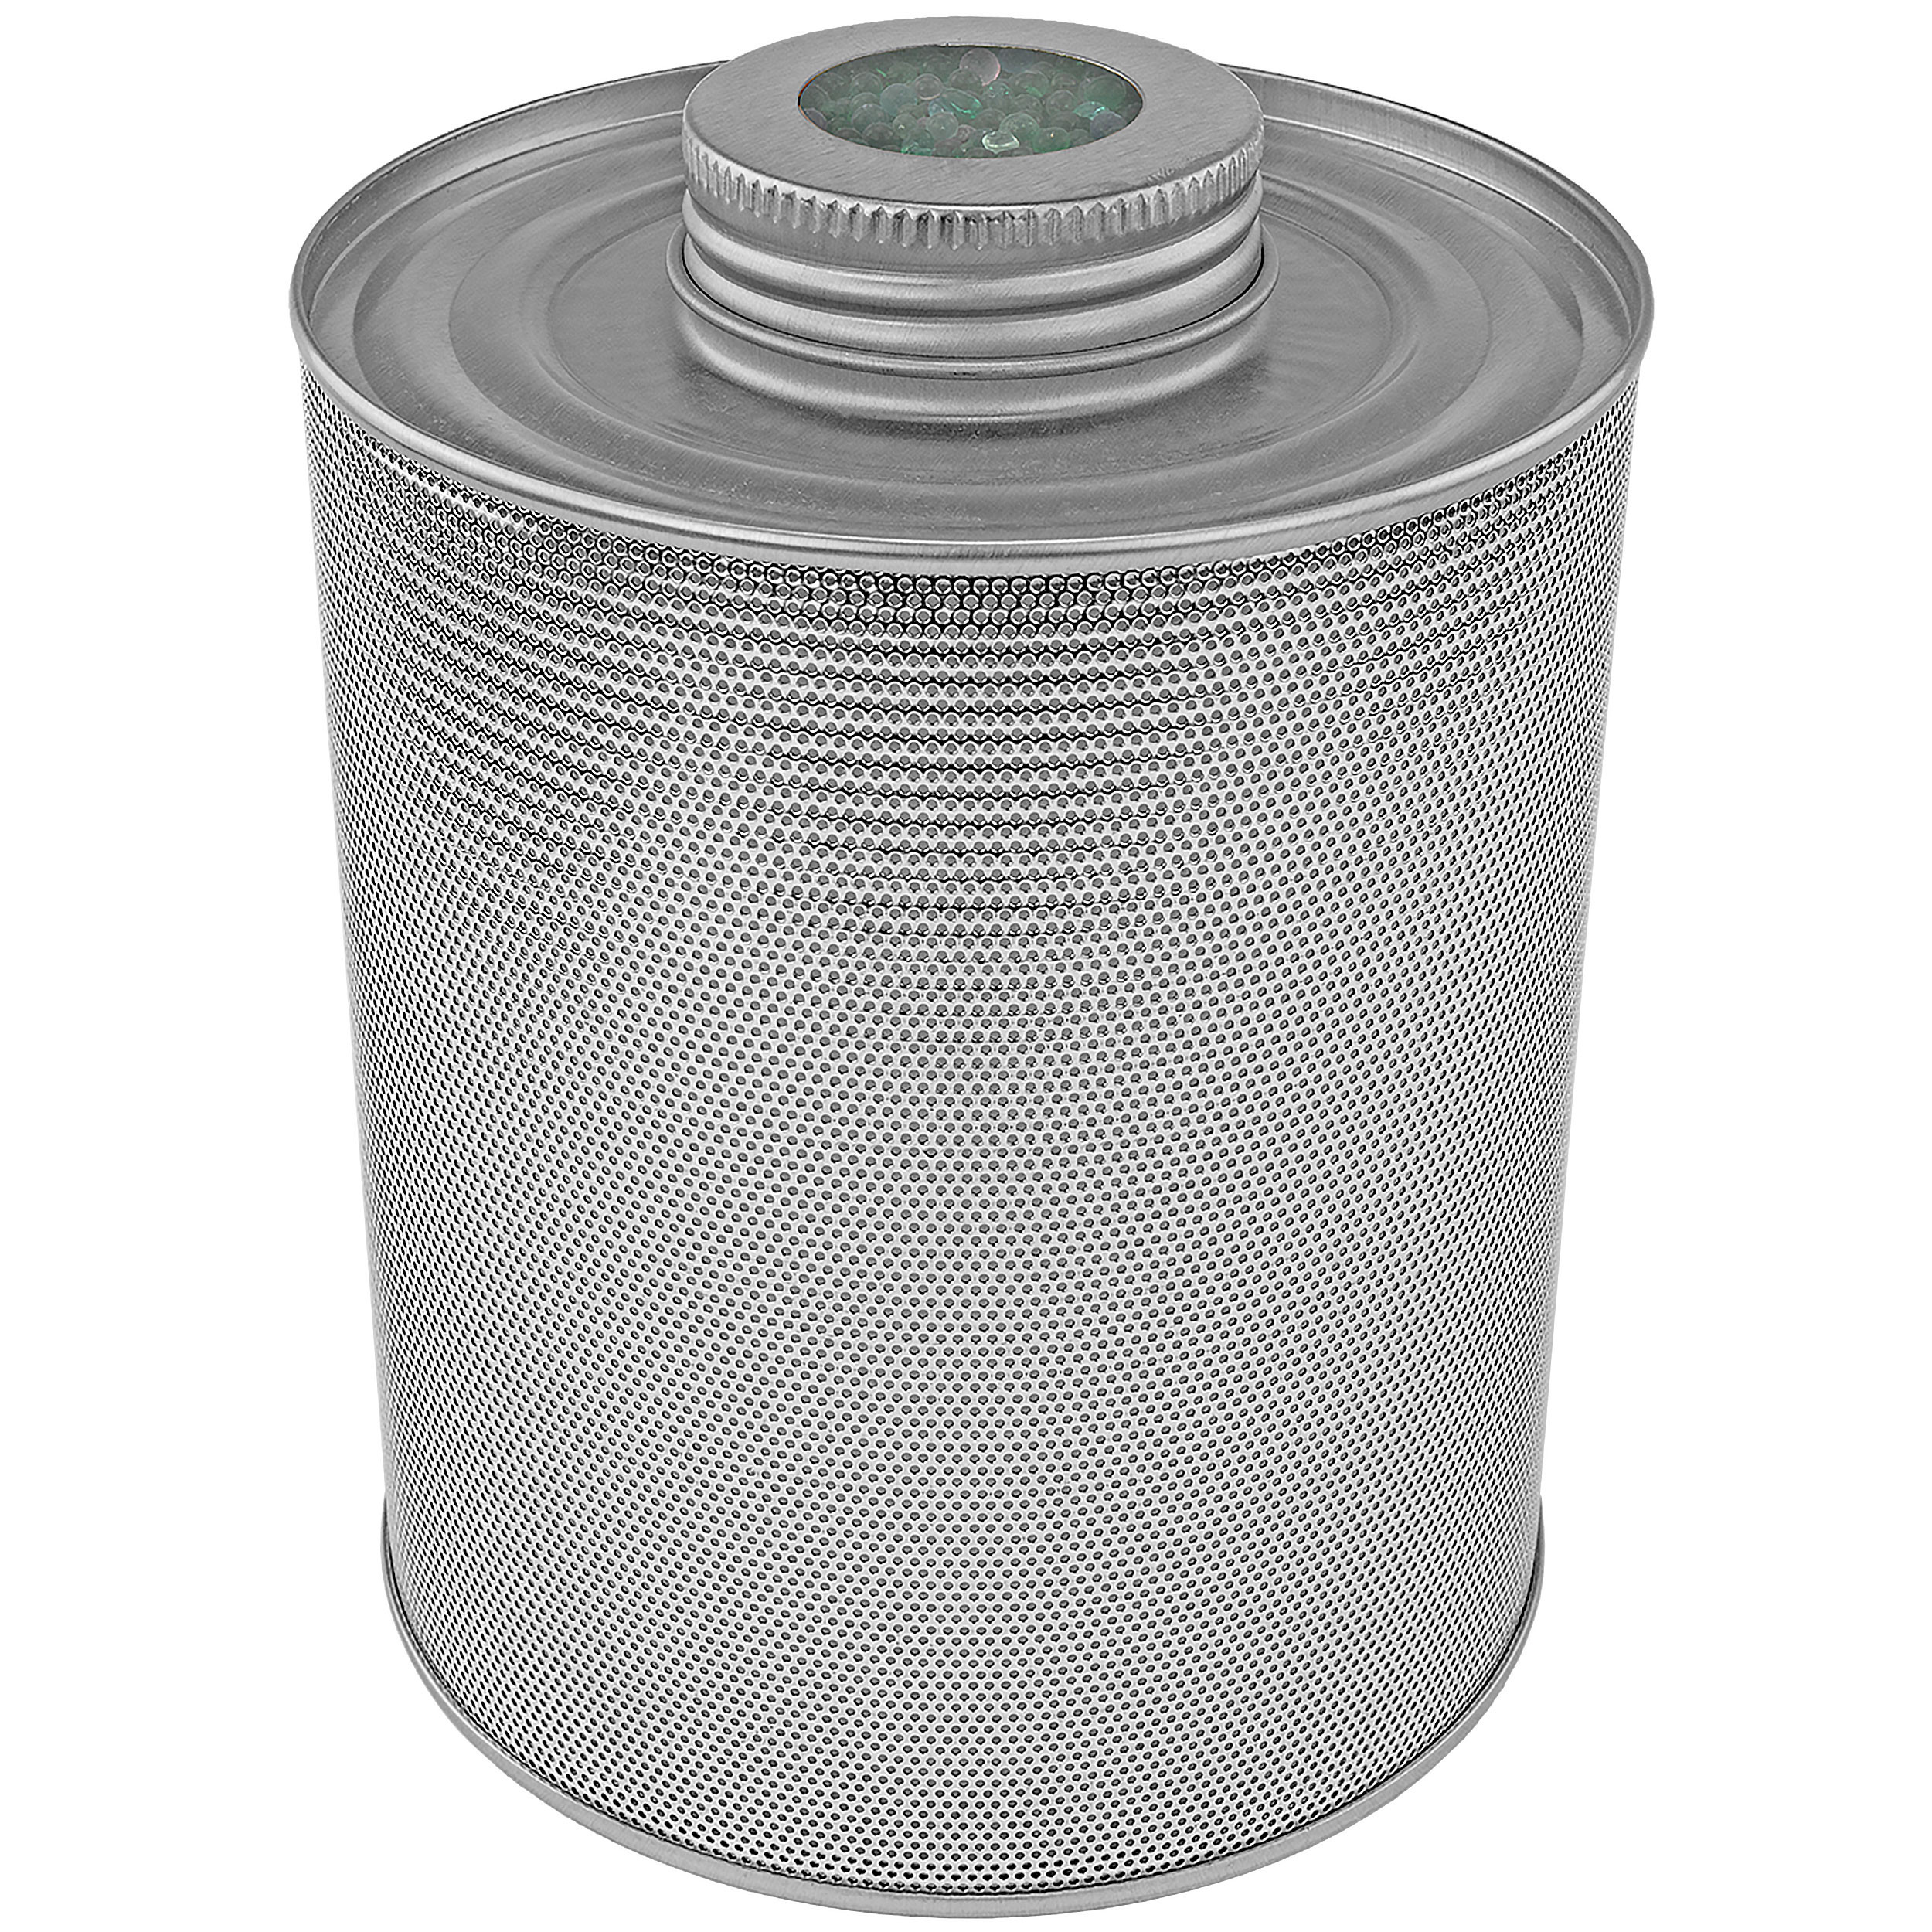 Aroma Dri 750gm Lavender Scented Silica Gel Steel Canister